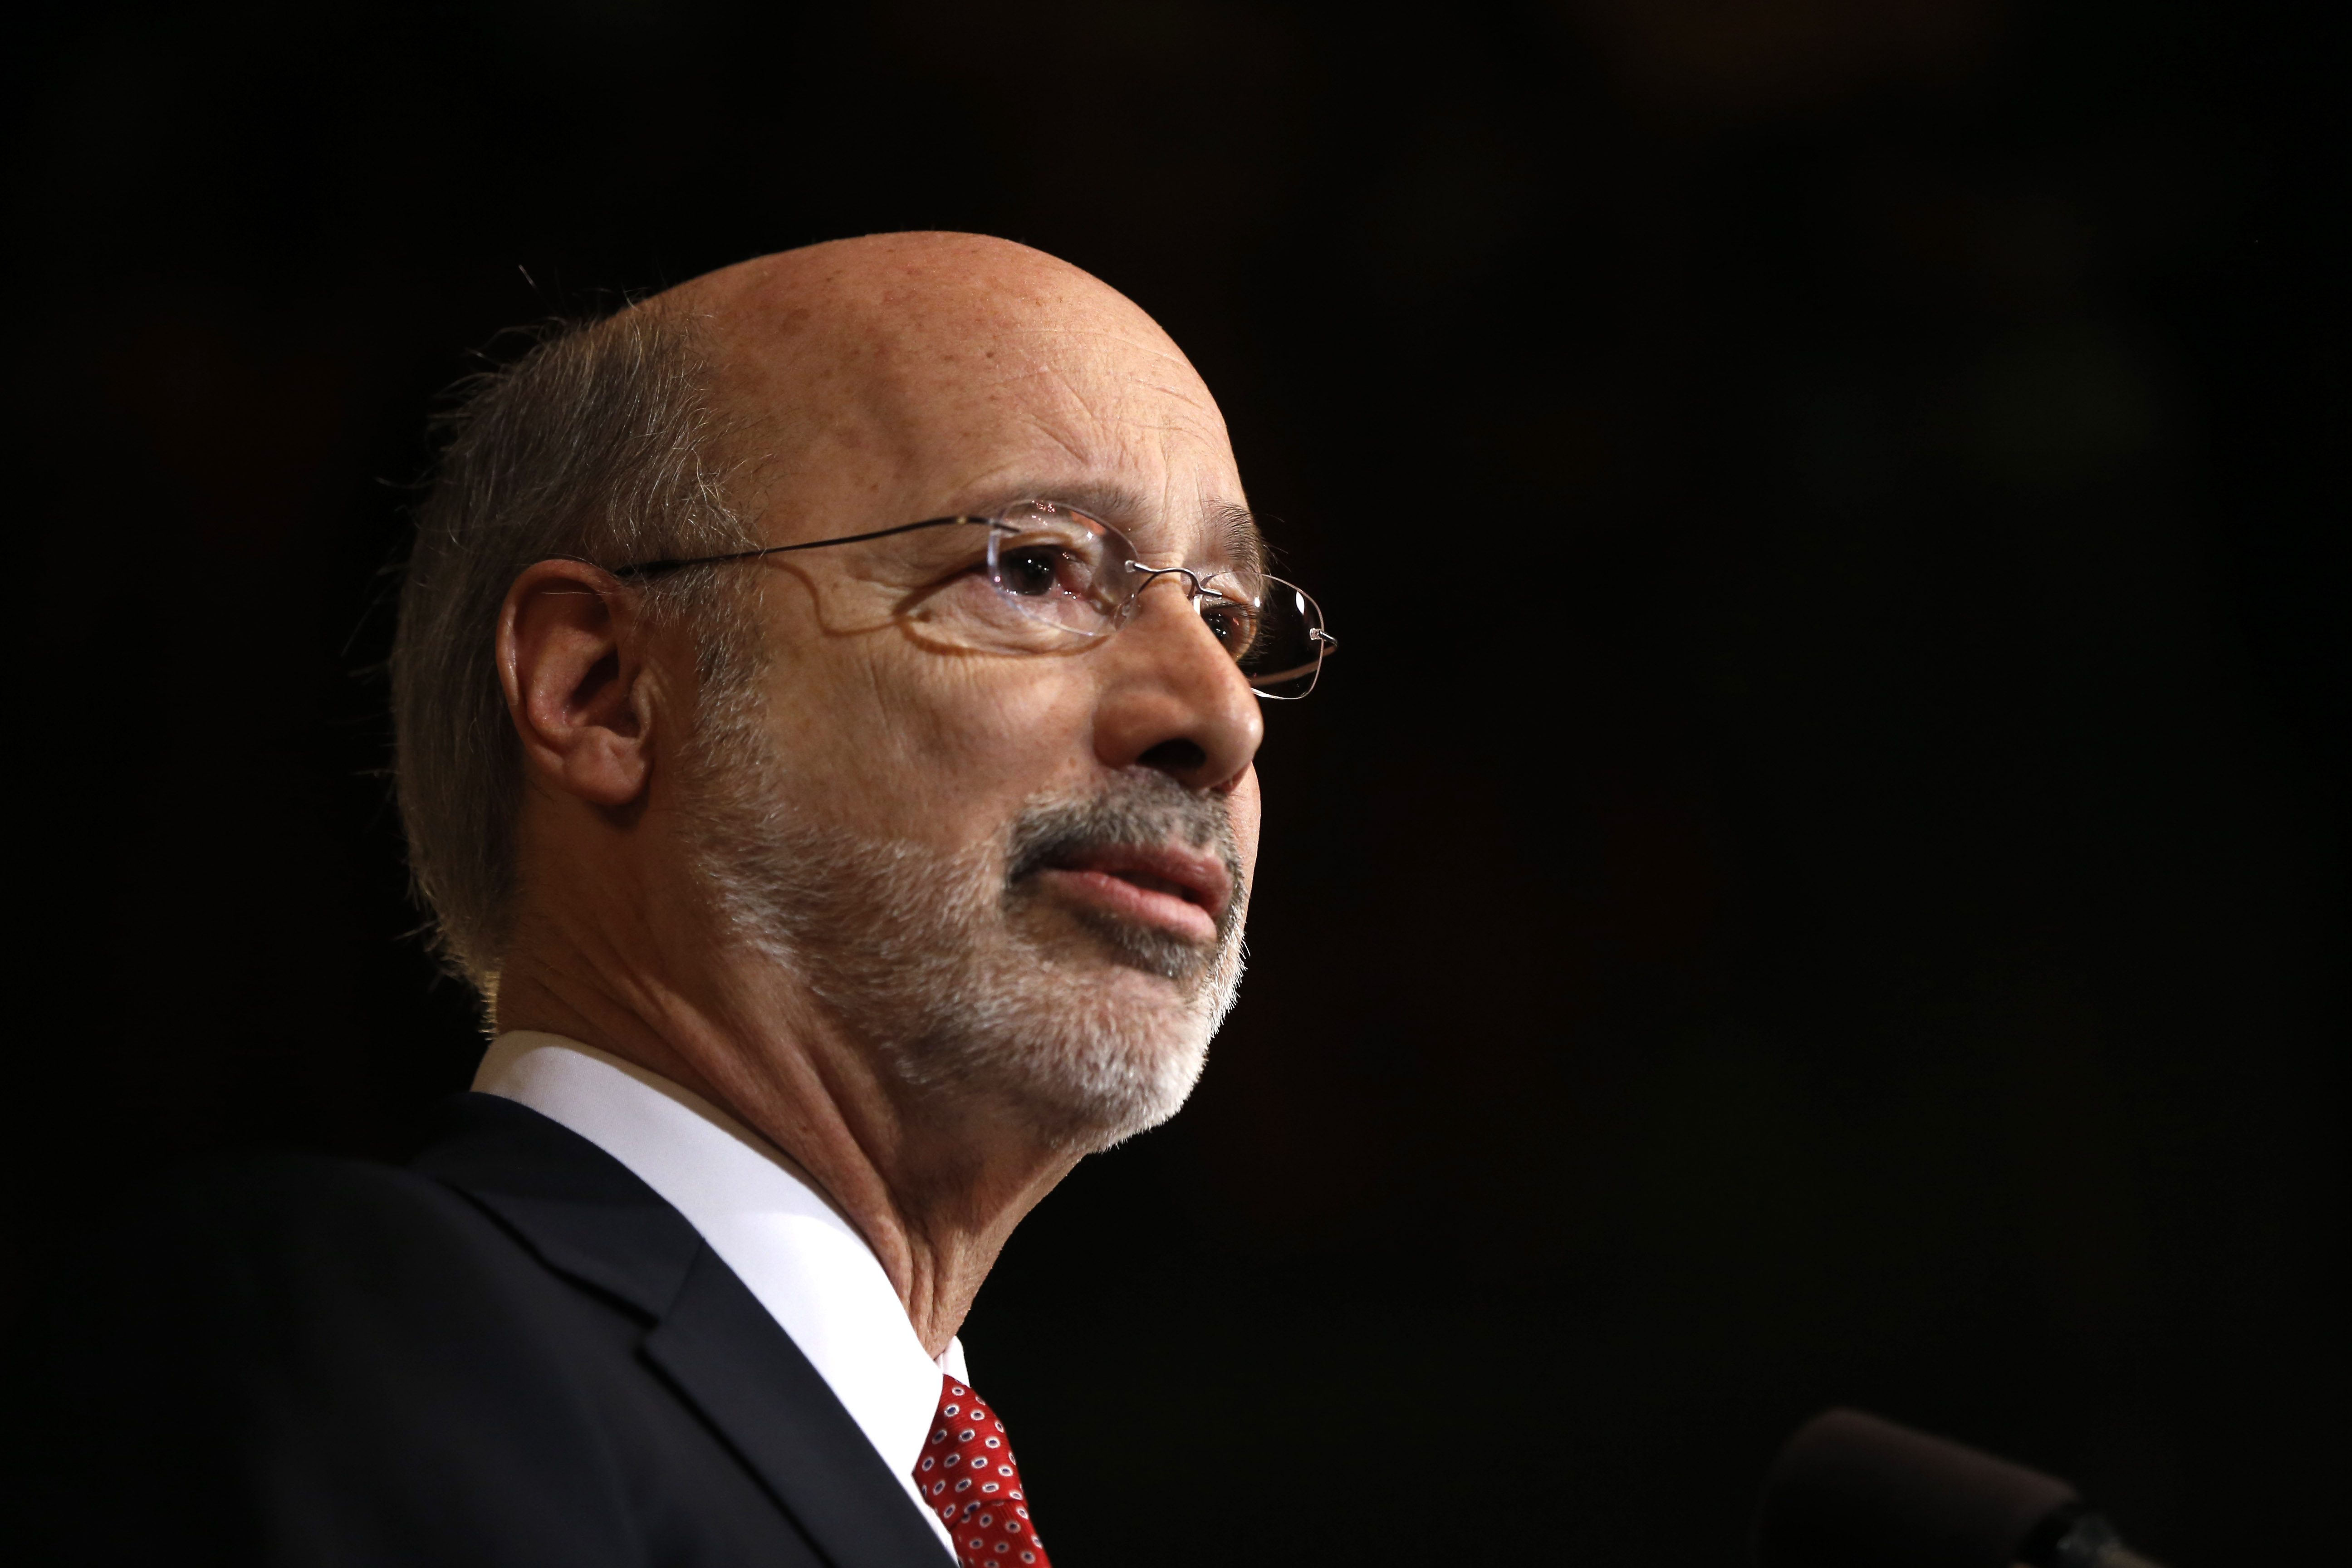 Gov. Wolf touts success of opioid info sharing system after first year